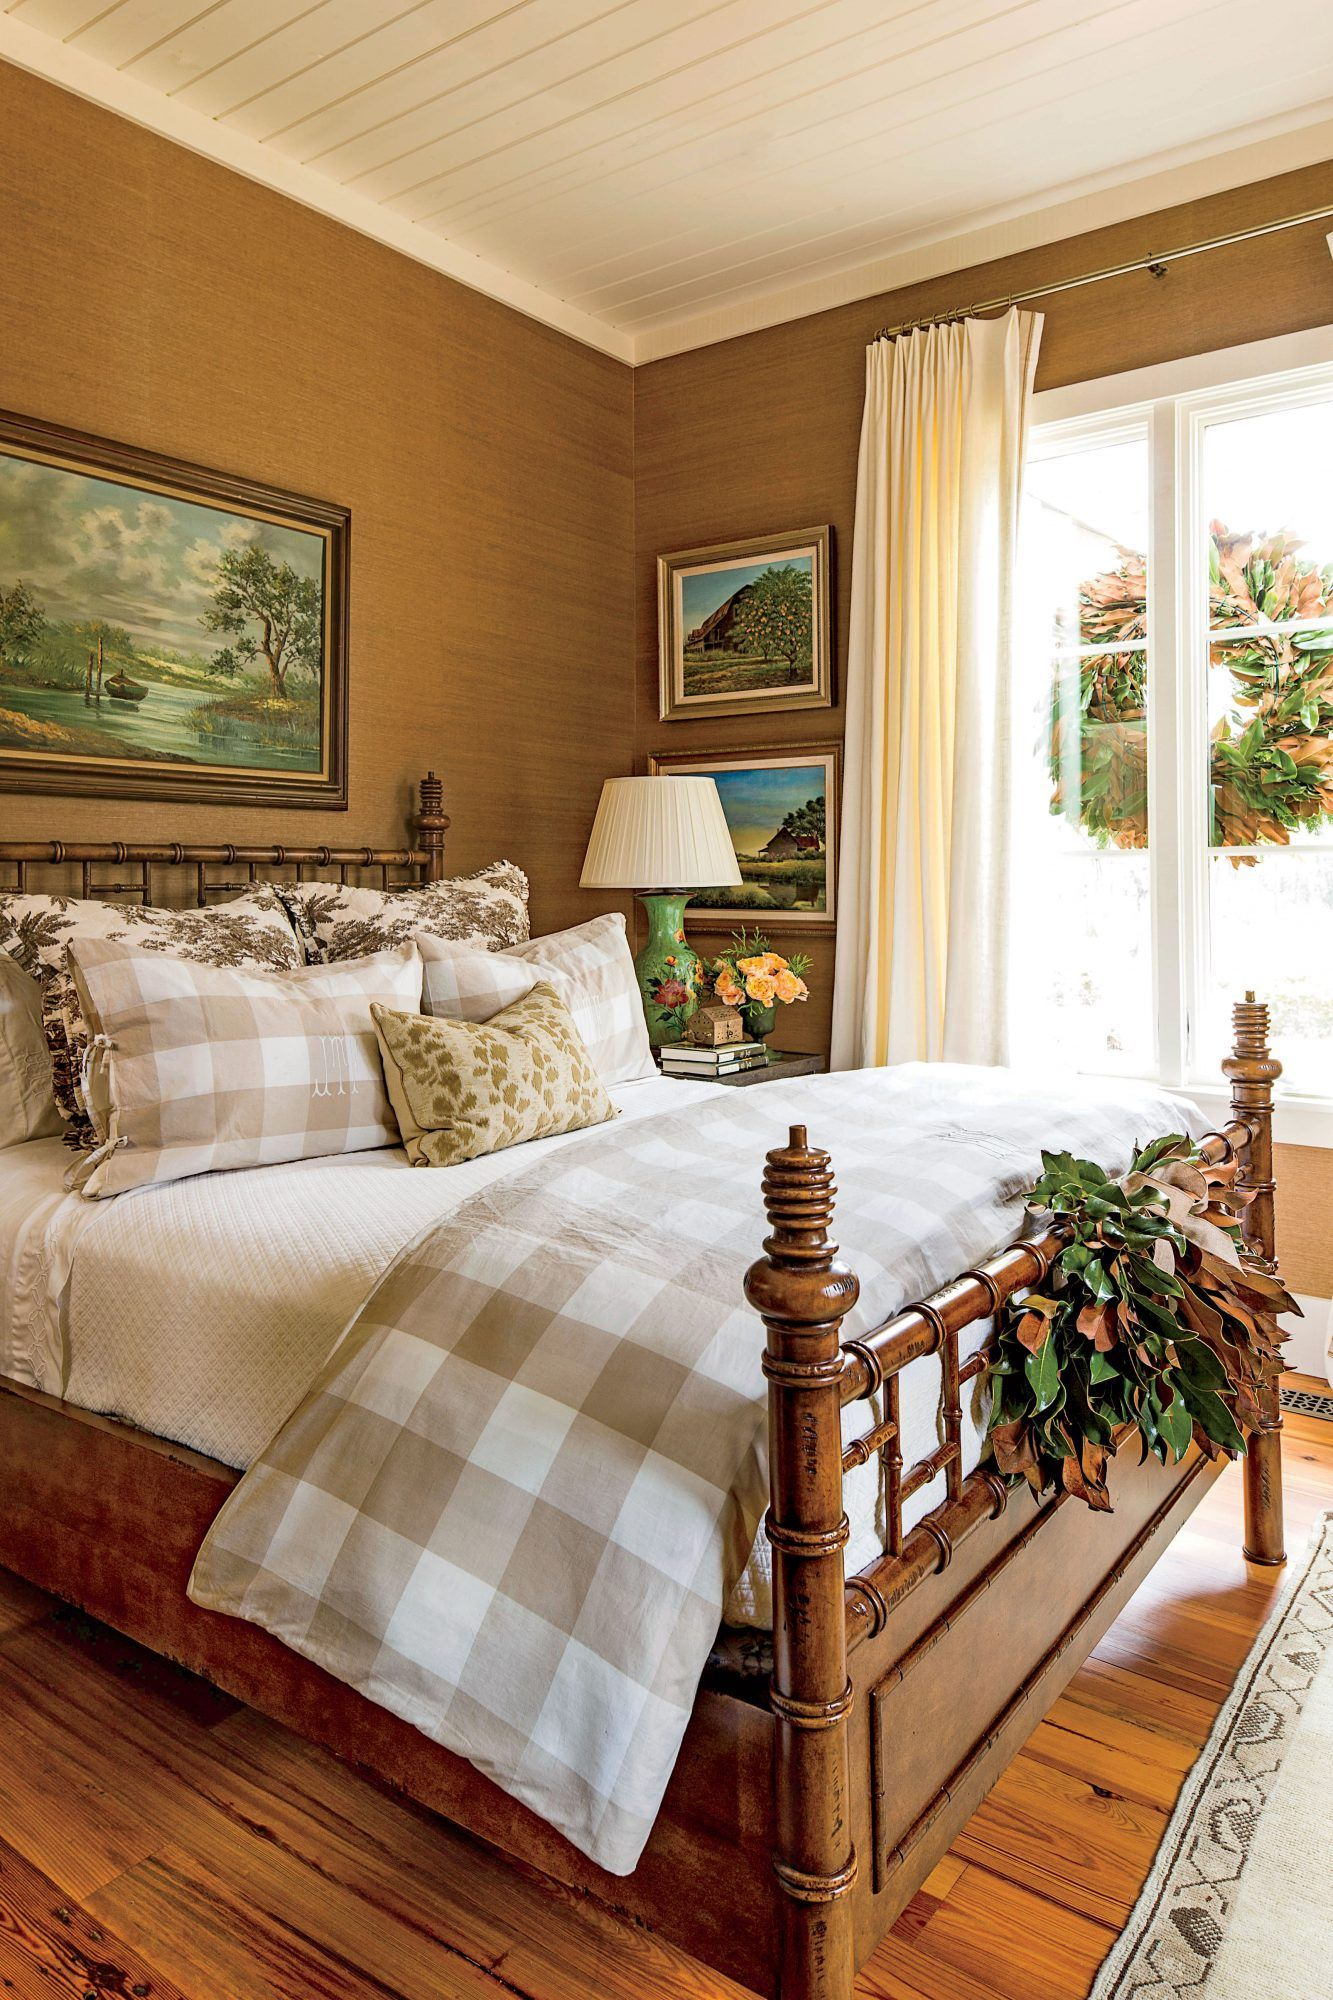 38+ Southern living master bedroom decorating ideas info cpns terbaru